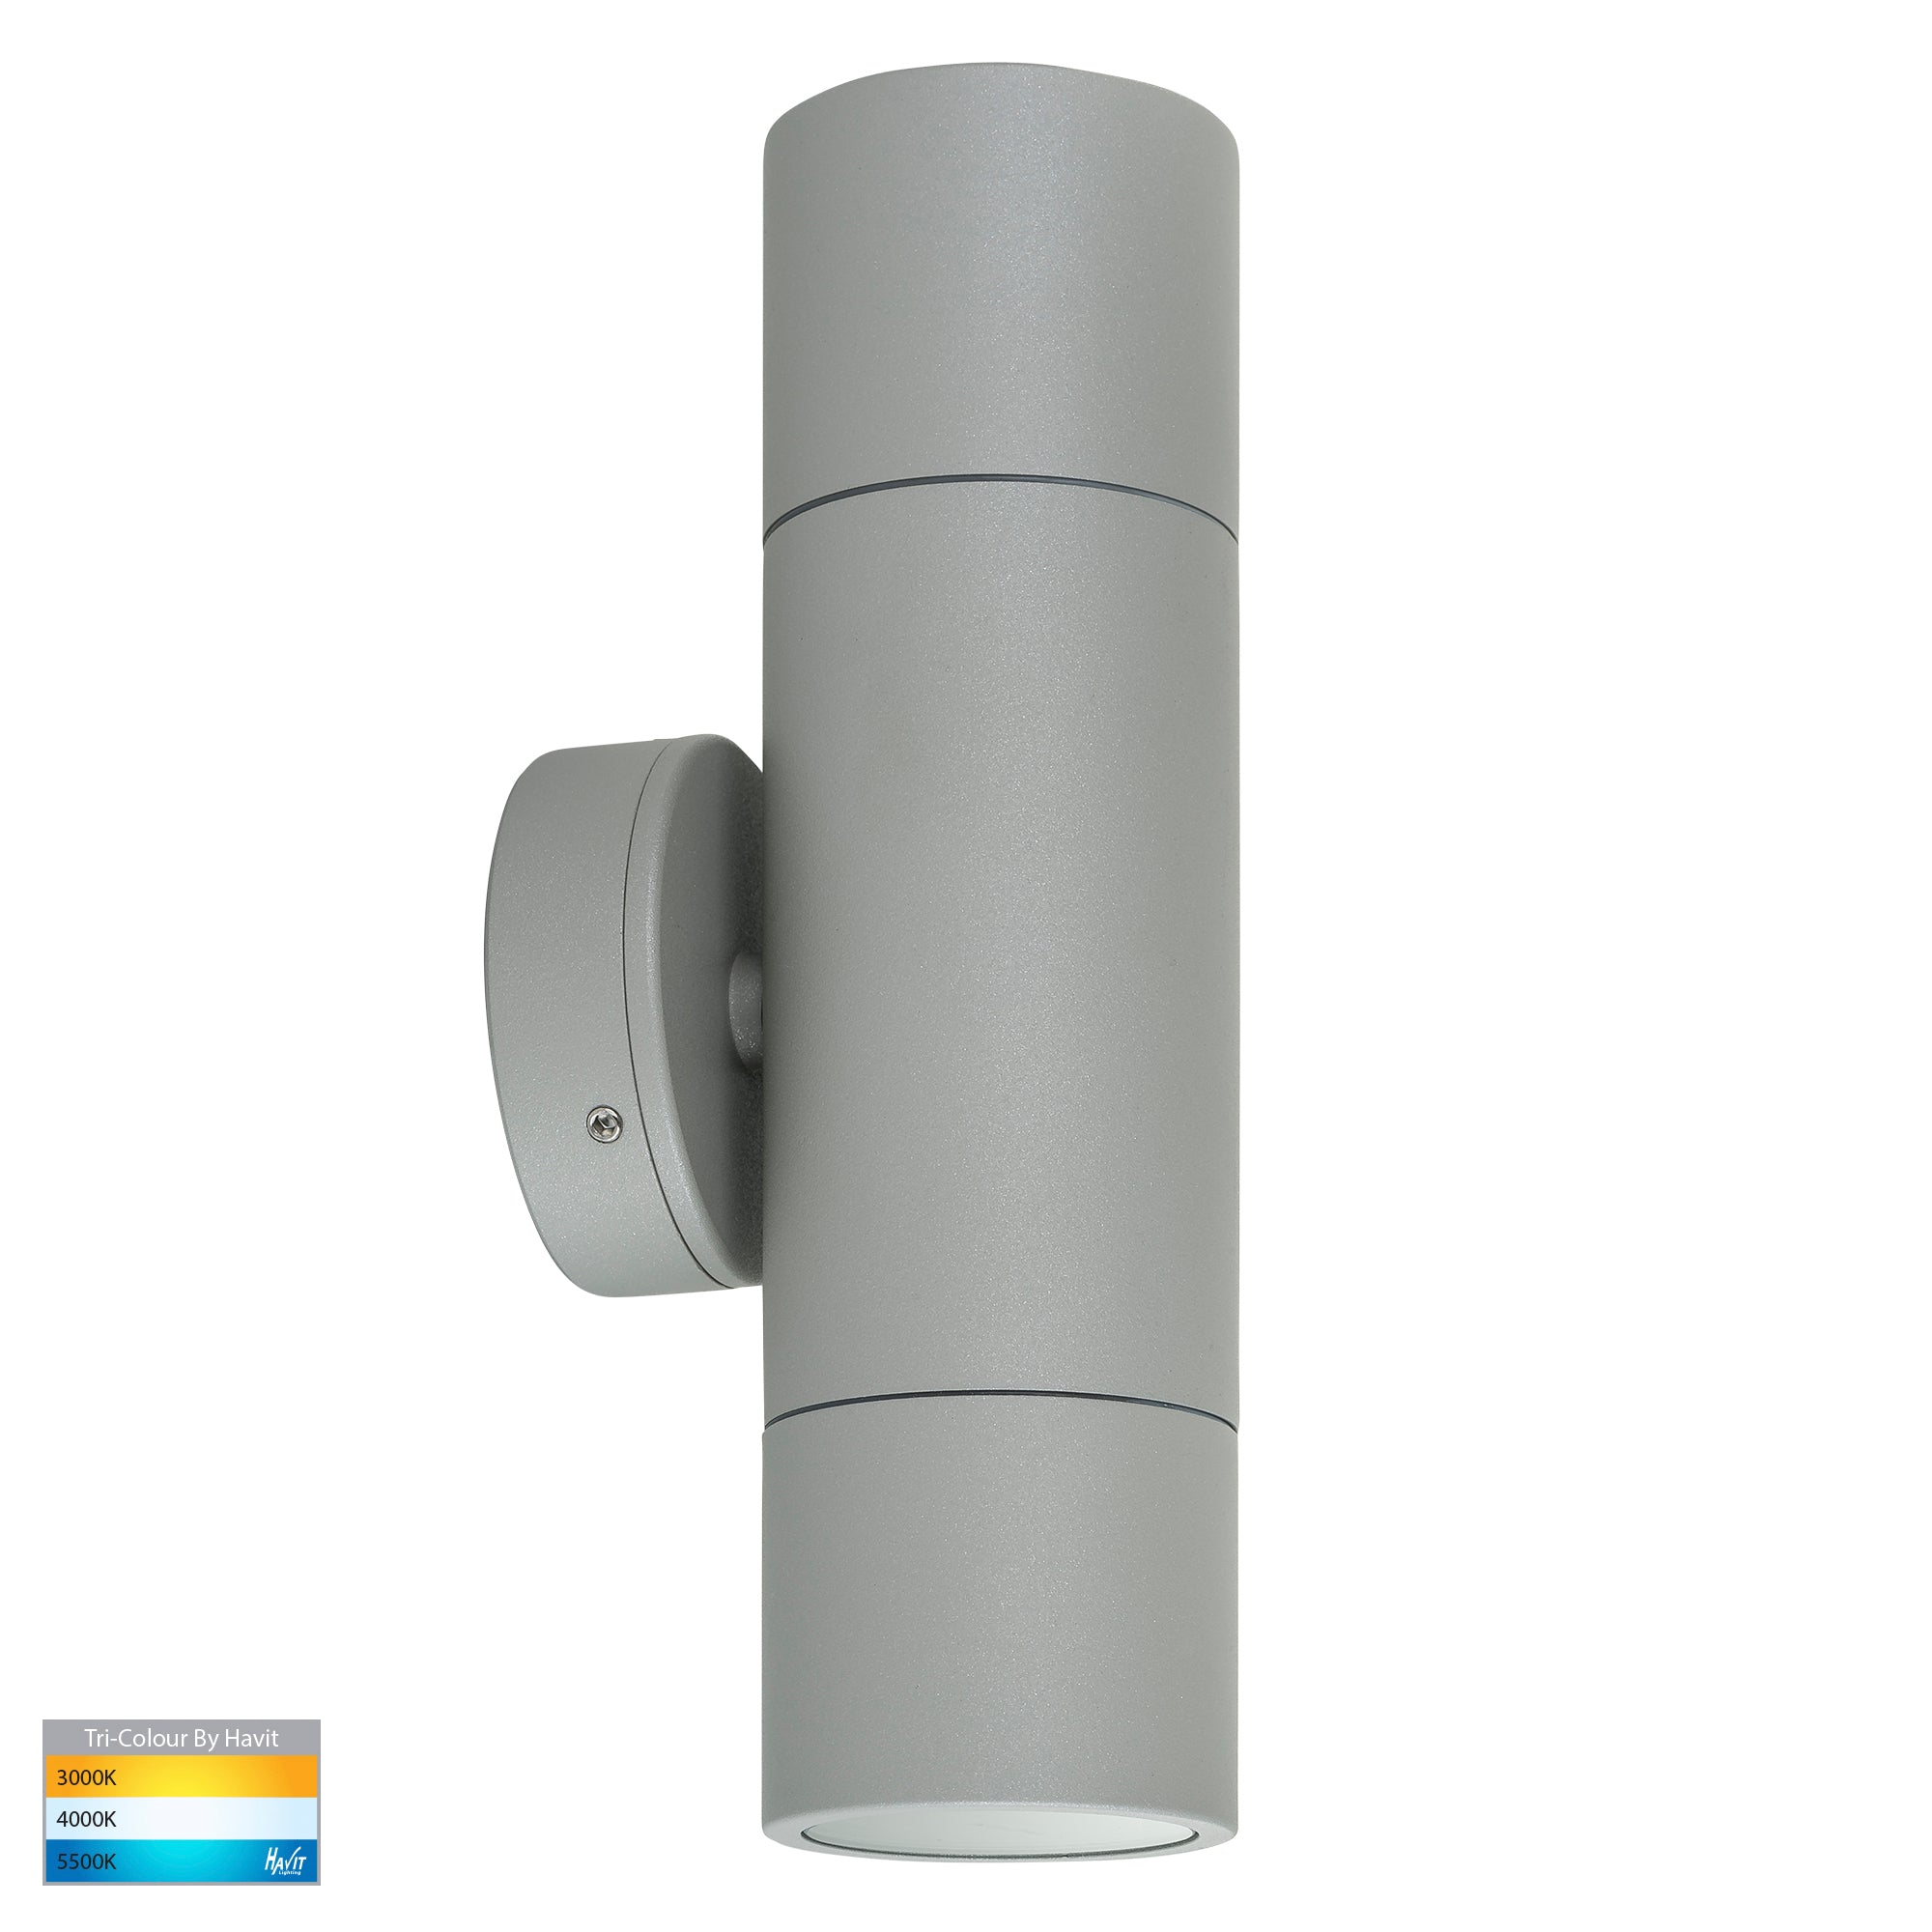 HV1045T-HV1047T - Tivah Silver TRI Colour Up & Down Wall Pillar Lights